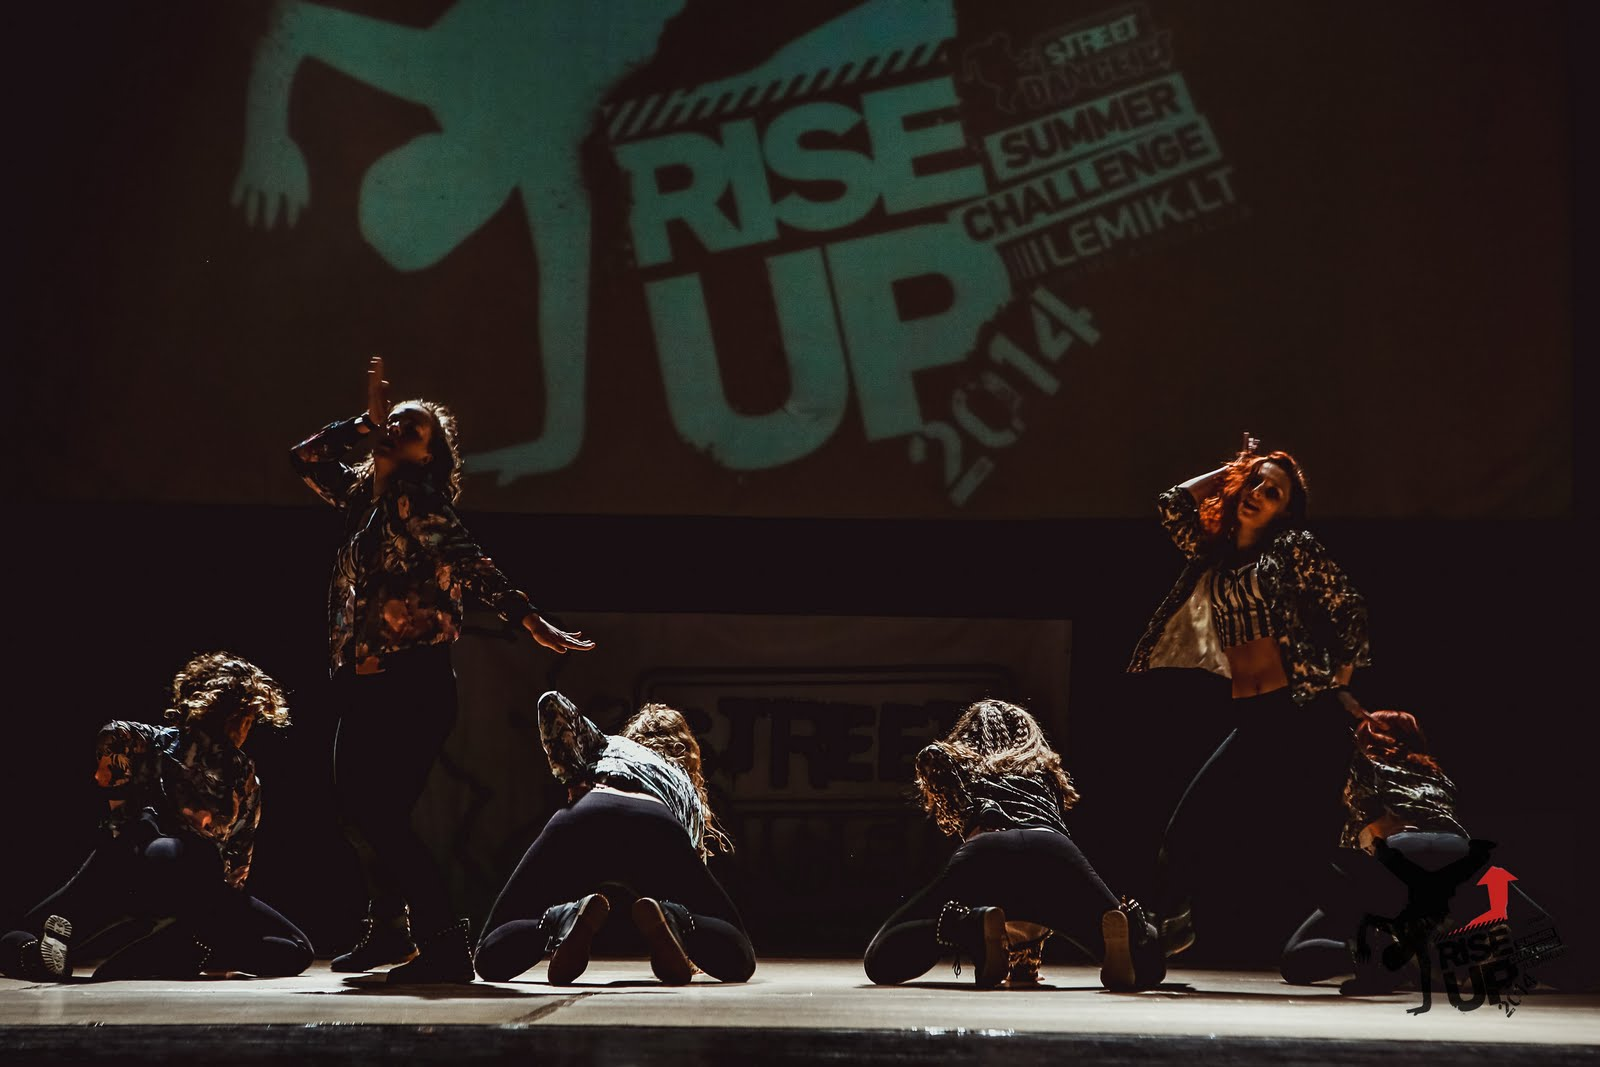 SKILLZ at RISEUP 2014 - _MG_5432.jpg